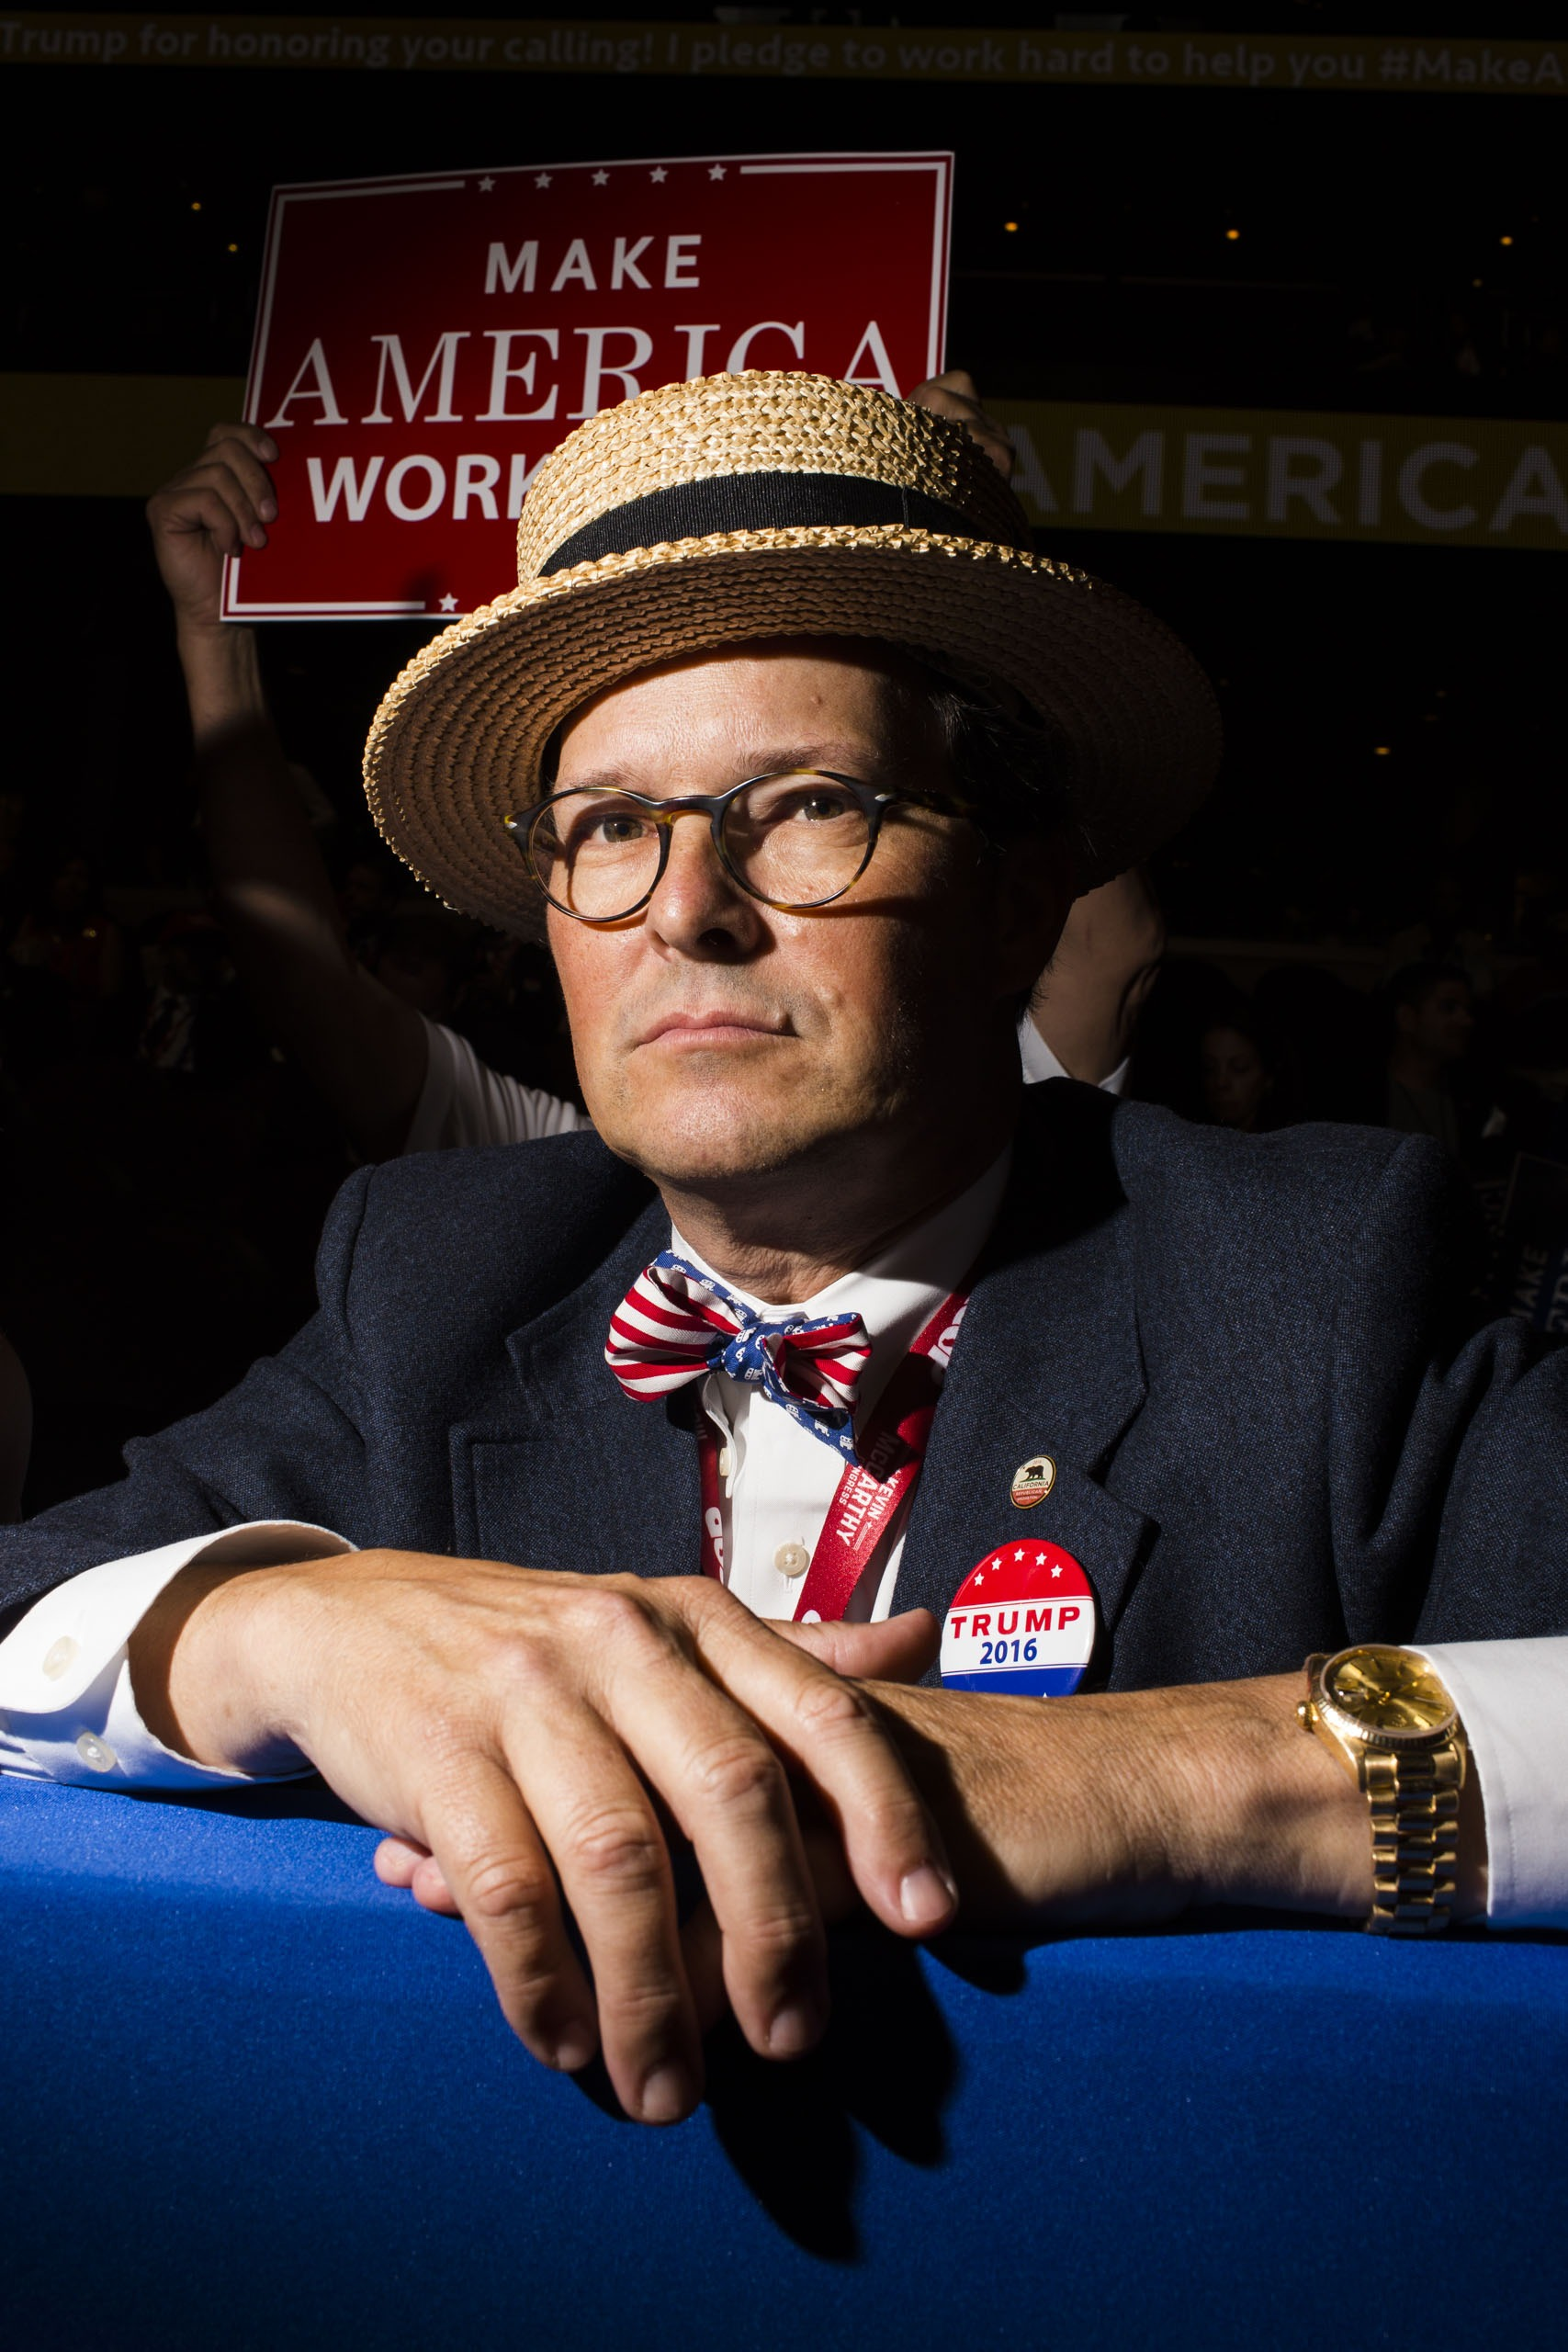 A man sports a dapper look on the floor of the Republican National Convention in Cleveland on Tuesday, July 19, 2016.